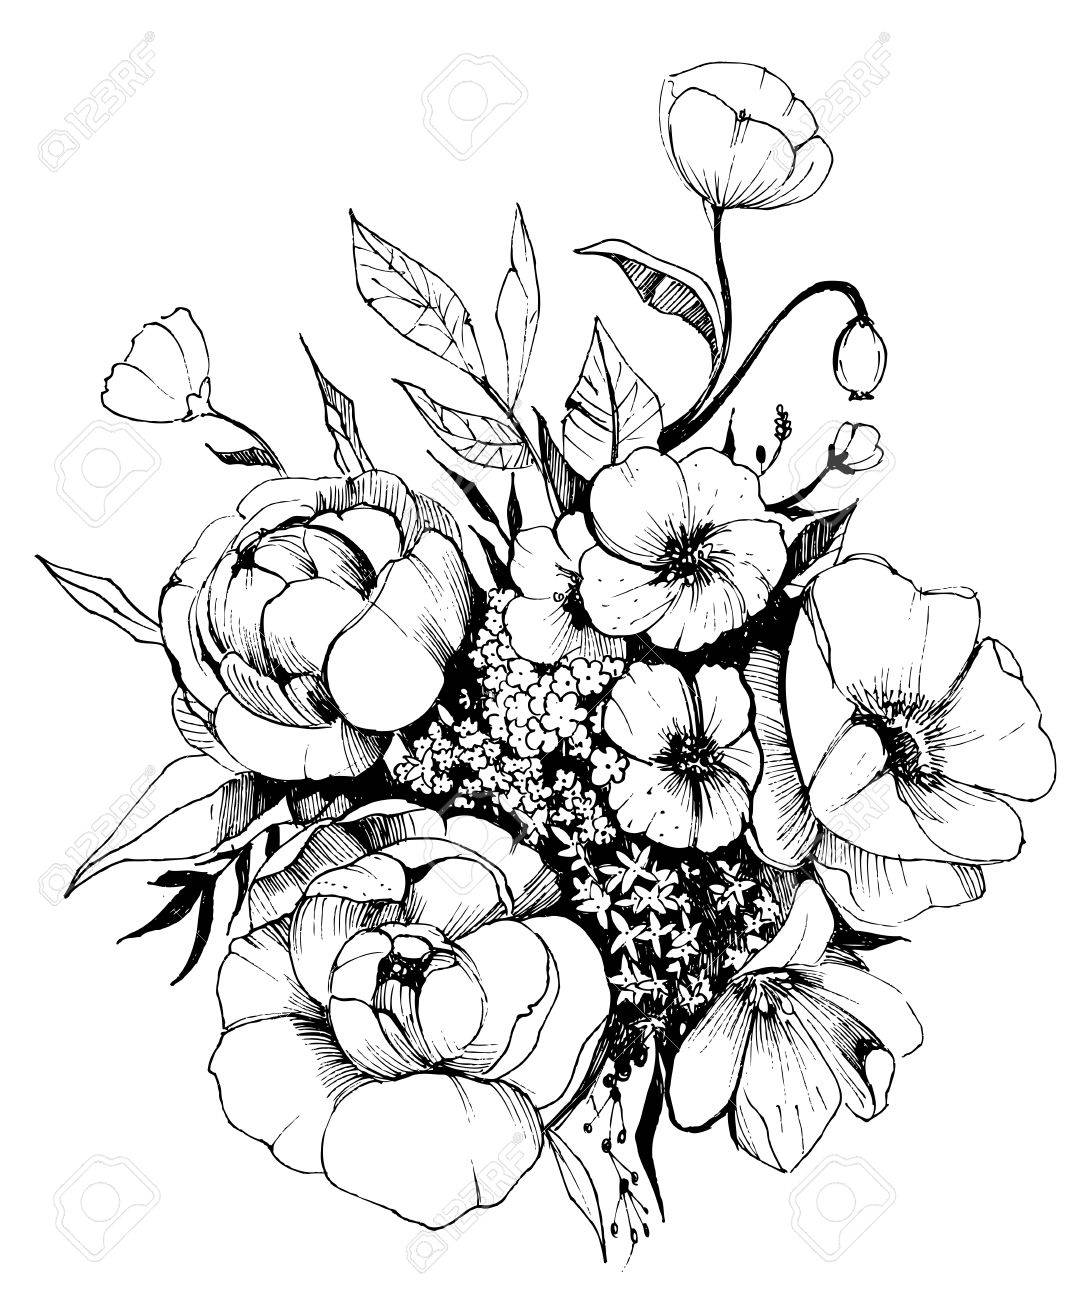 Flower bouquet drawing at getdrawings free for personal use 1083x1300 flowers bouquet vector sketch royalty free cliparts vectors izmirmasajfo